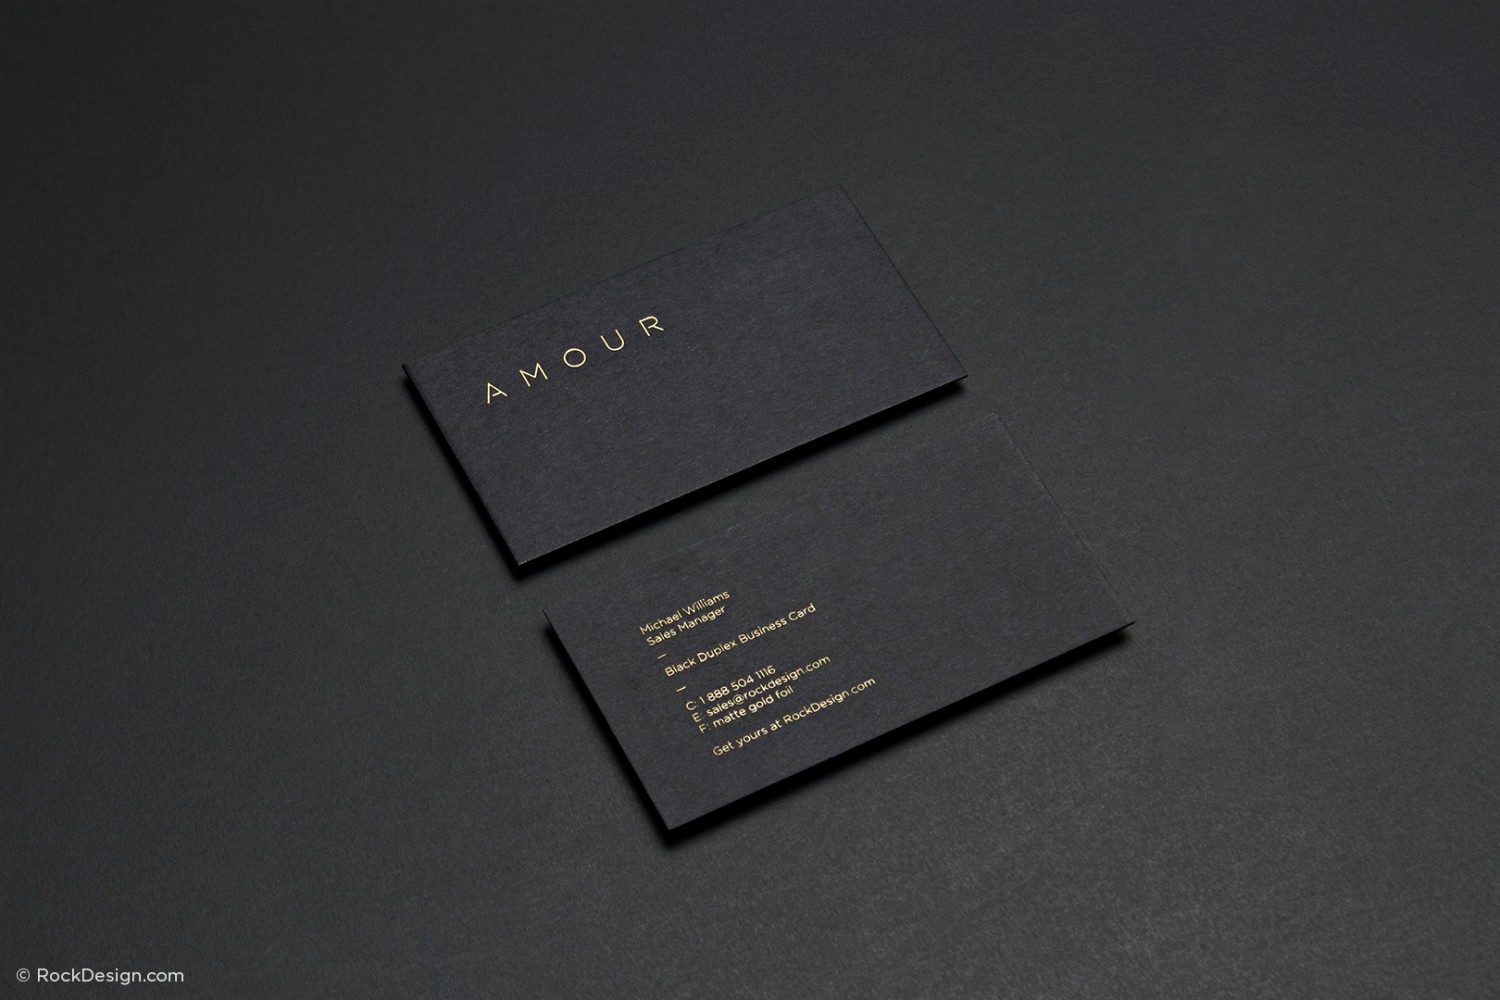 Avery Business Card Template 28878 New Template for Business Cards Professional Illustrator Avery